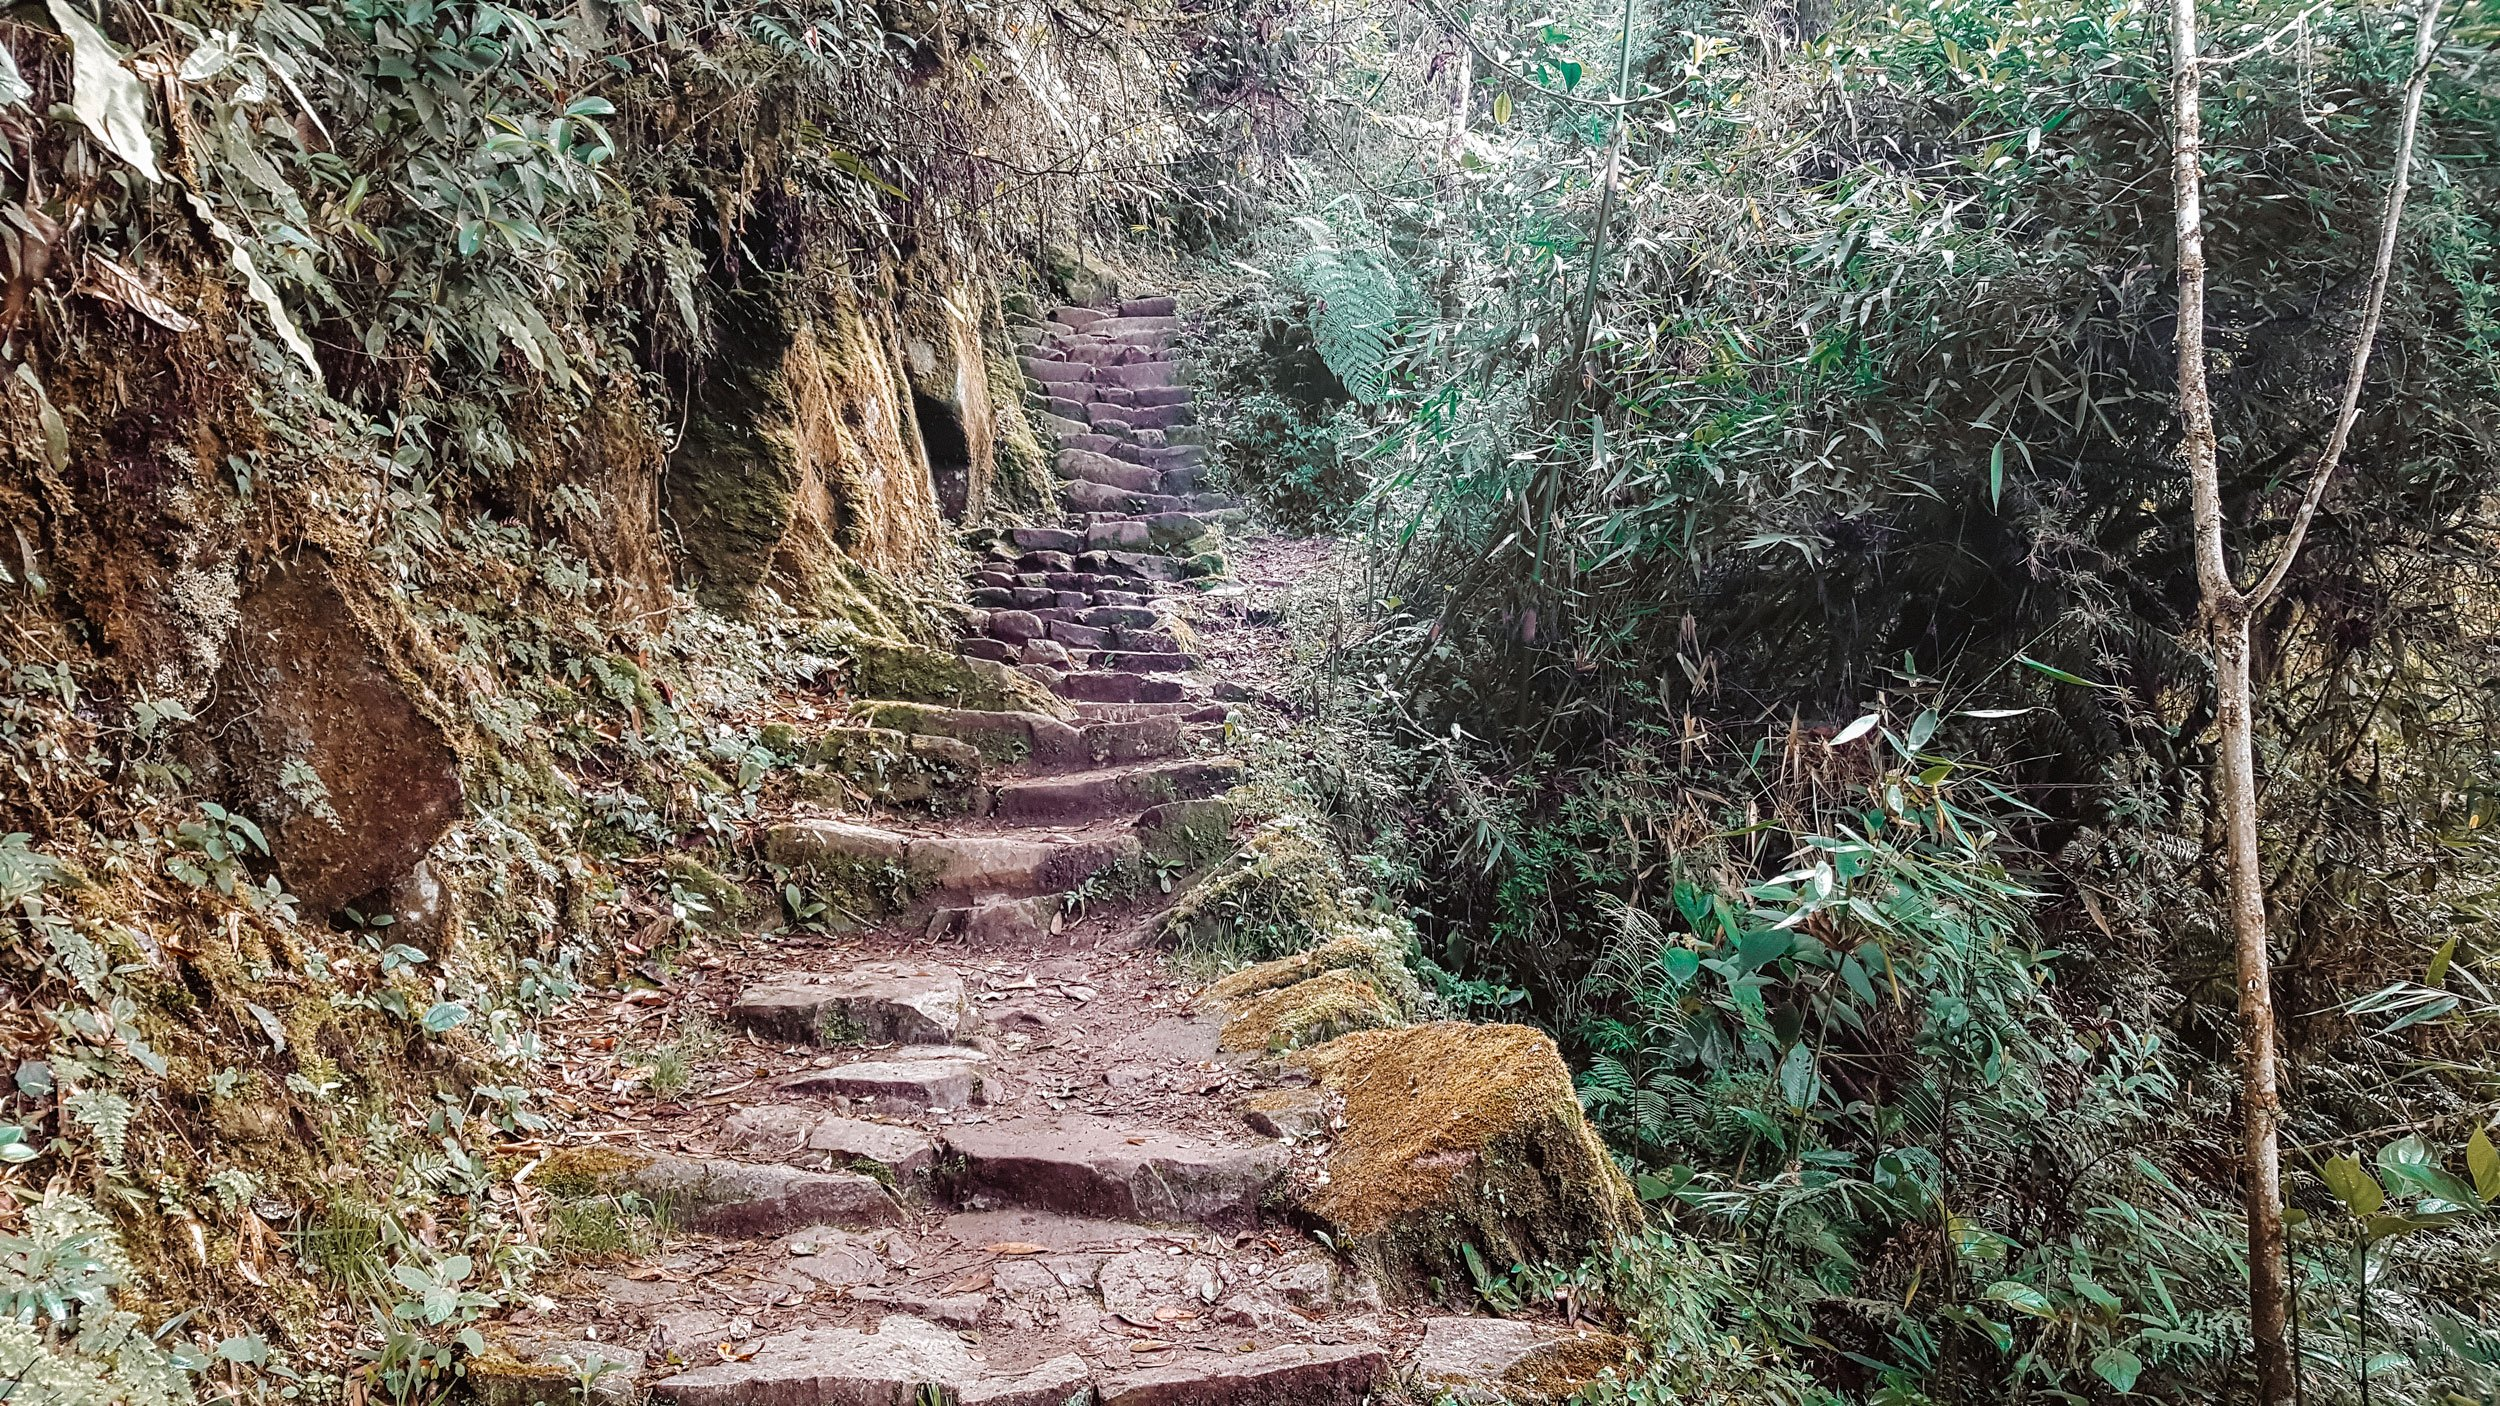 How to Hike the Inca Trail as a Solo Female Traveler